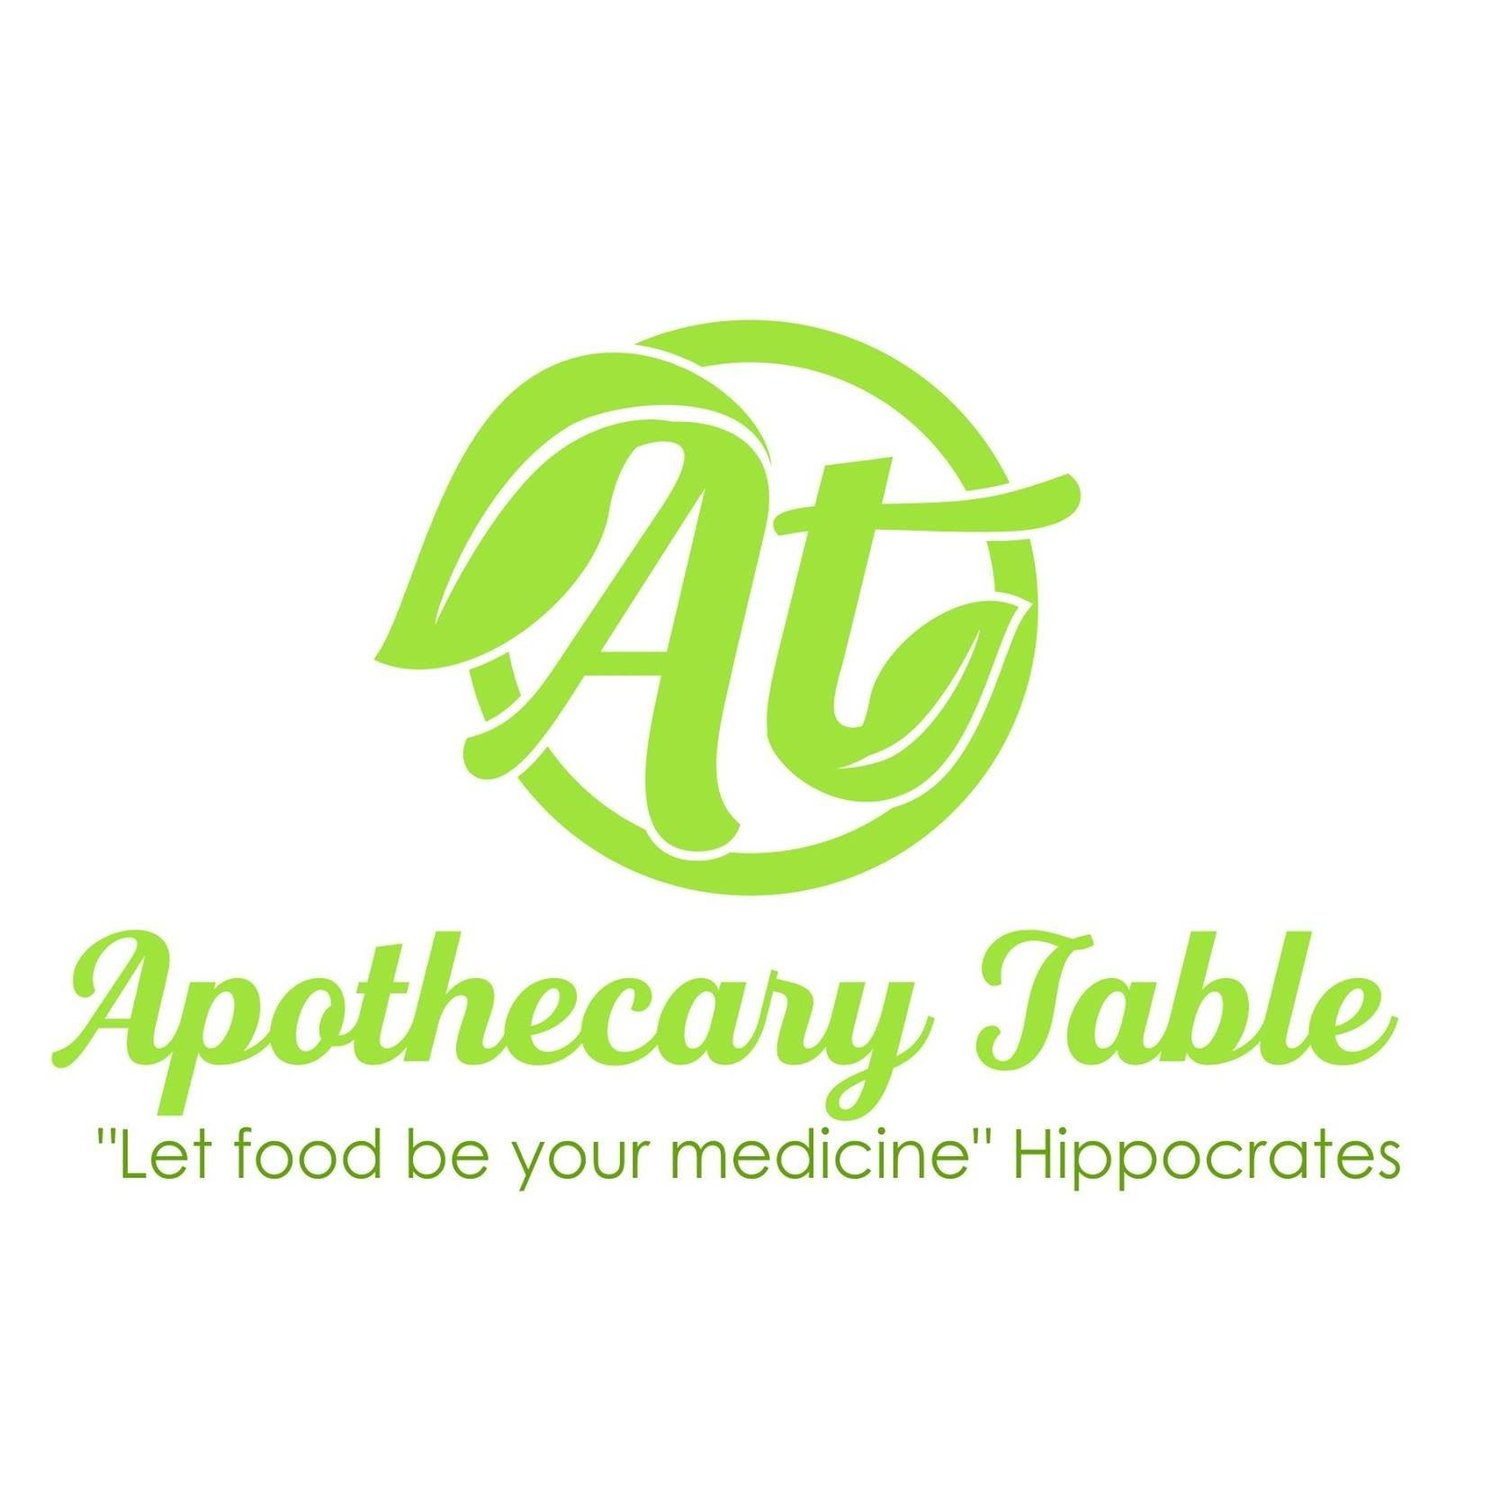 The Apothecary Table